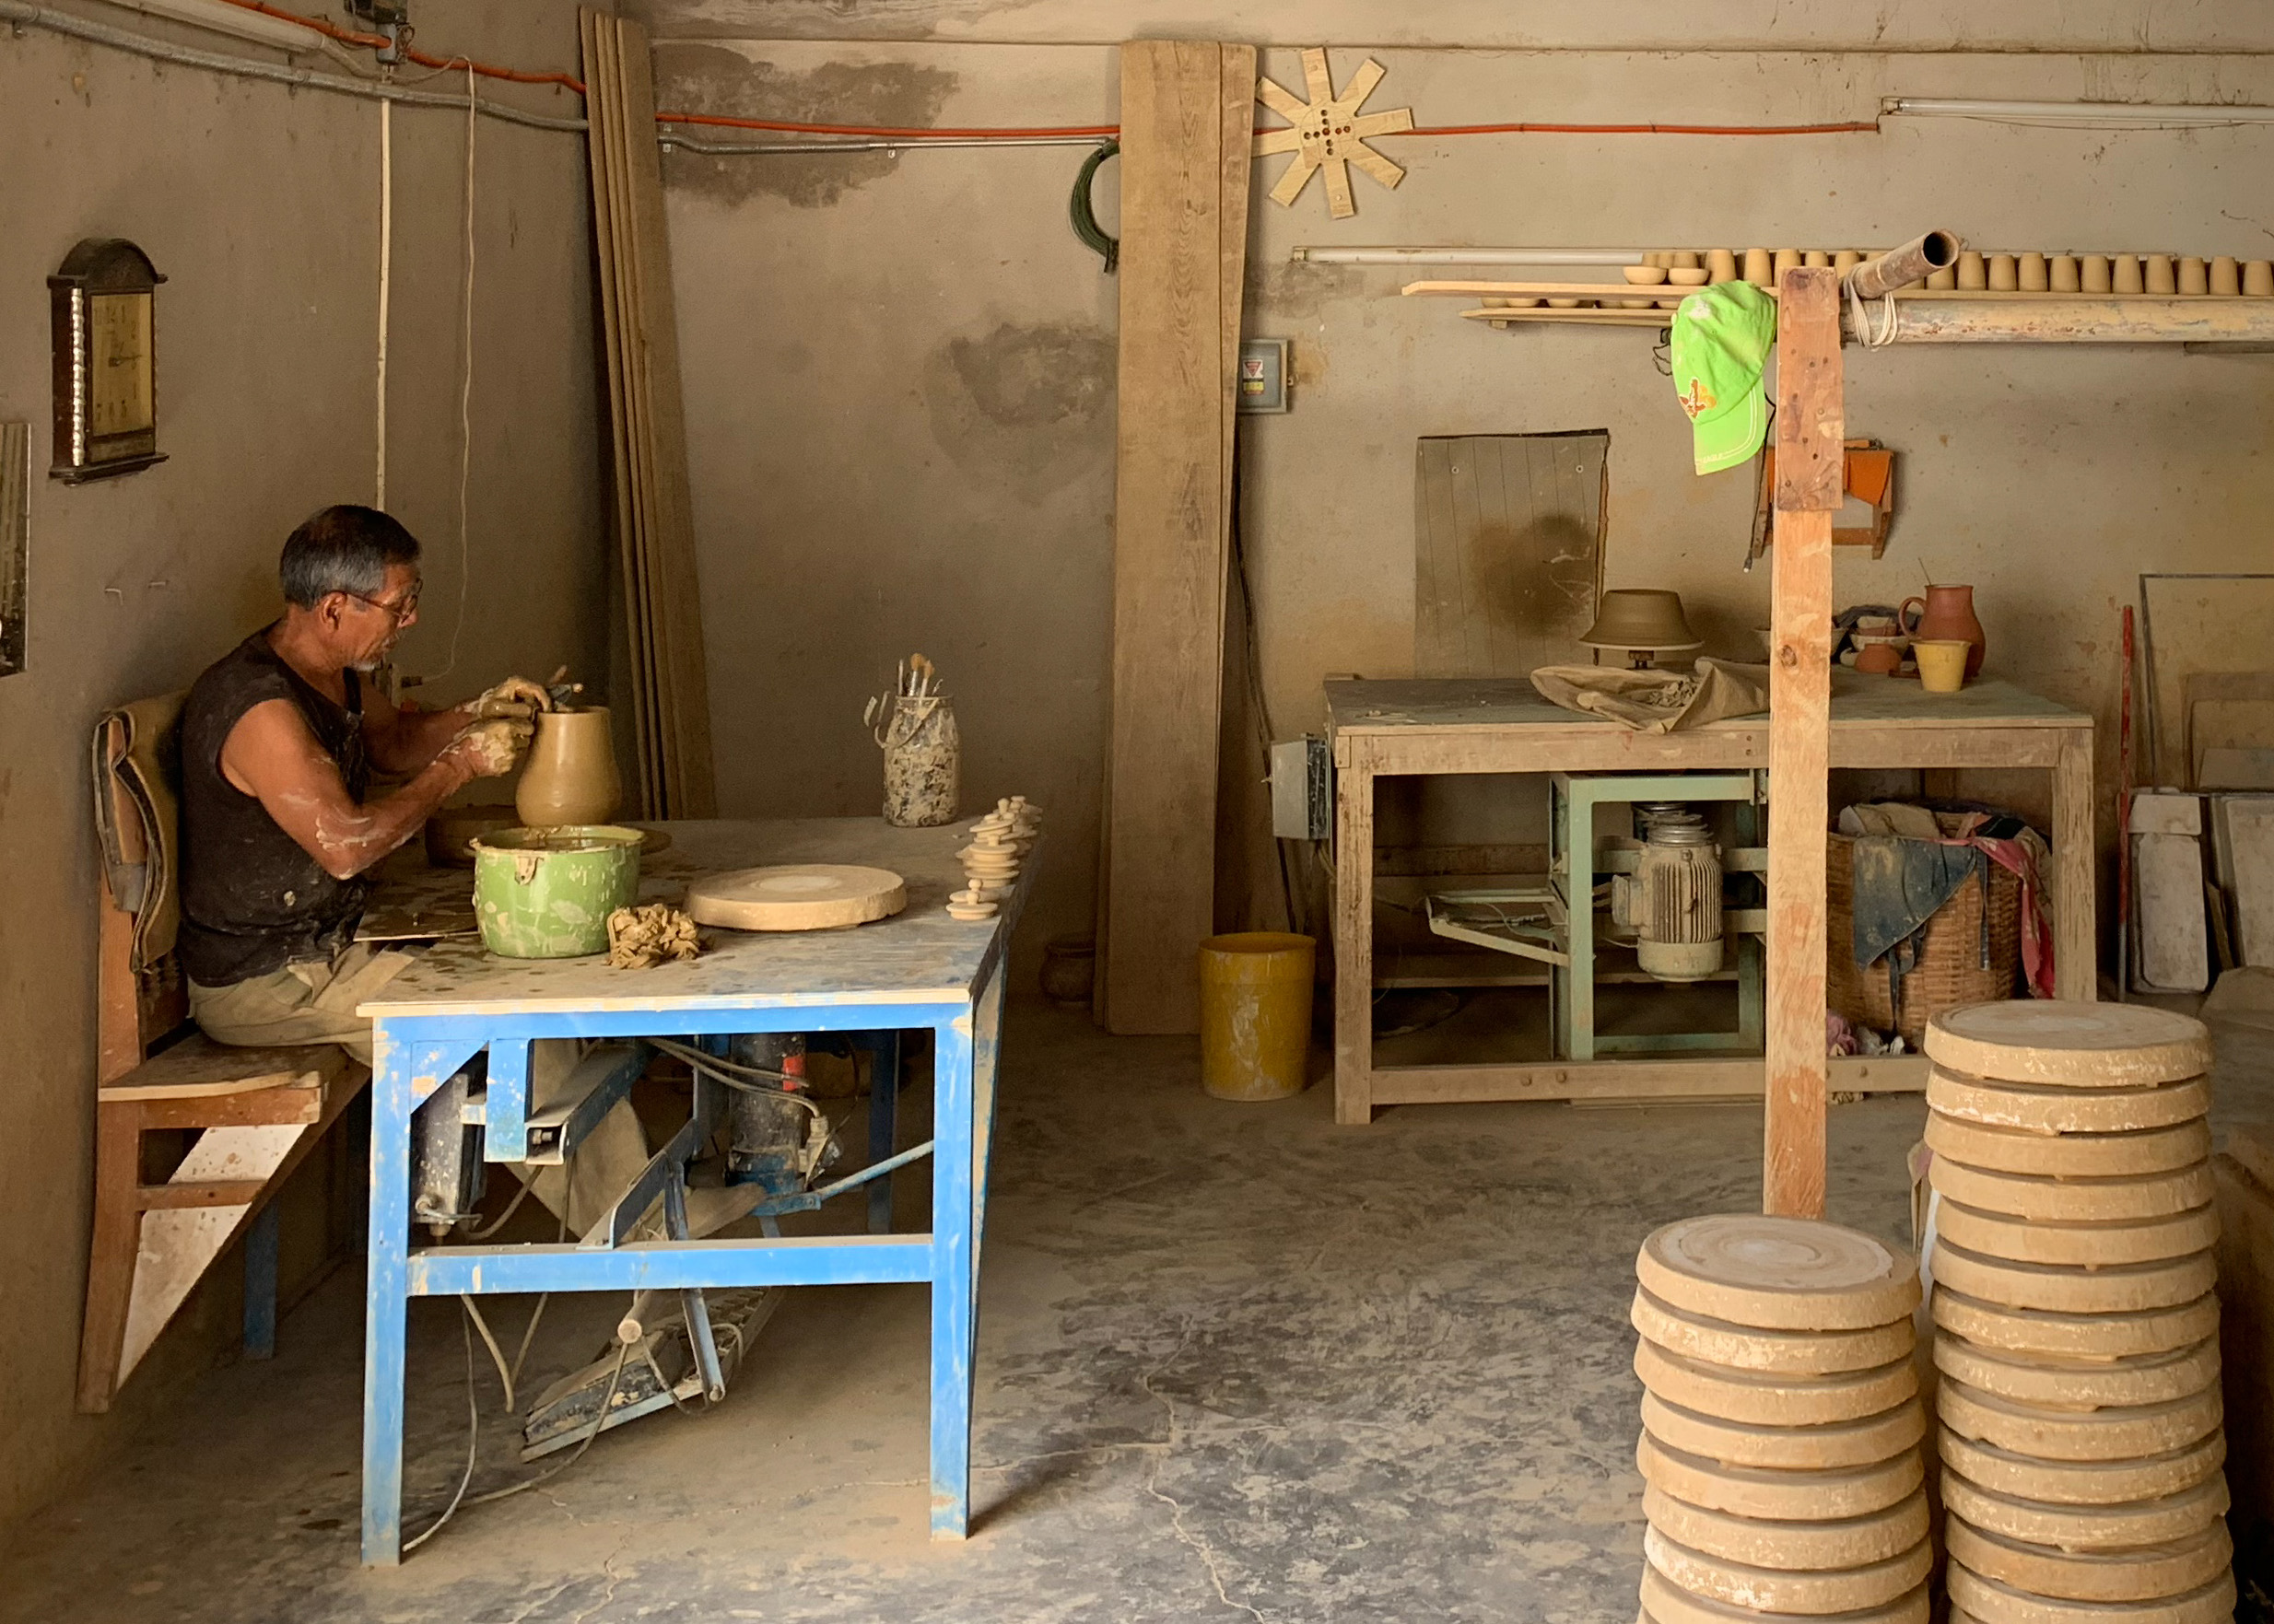 An artisan shaping a clay pitcher.